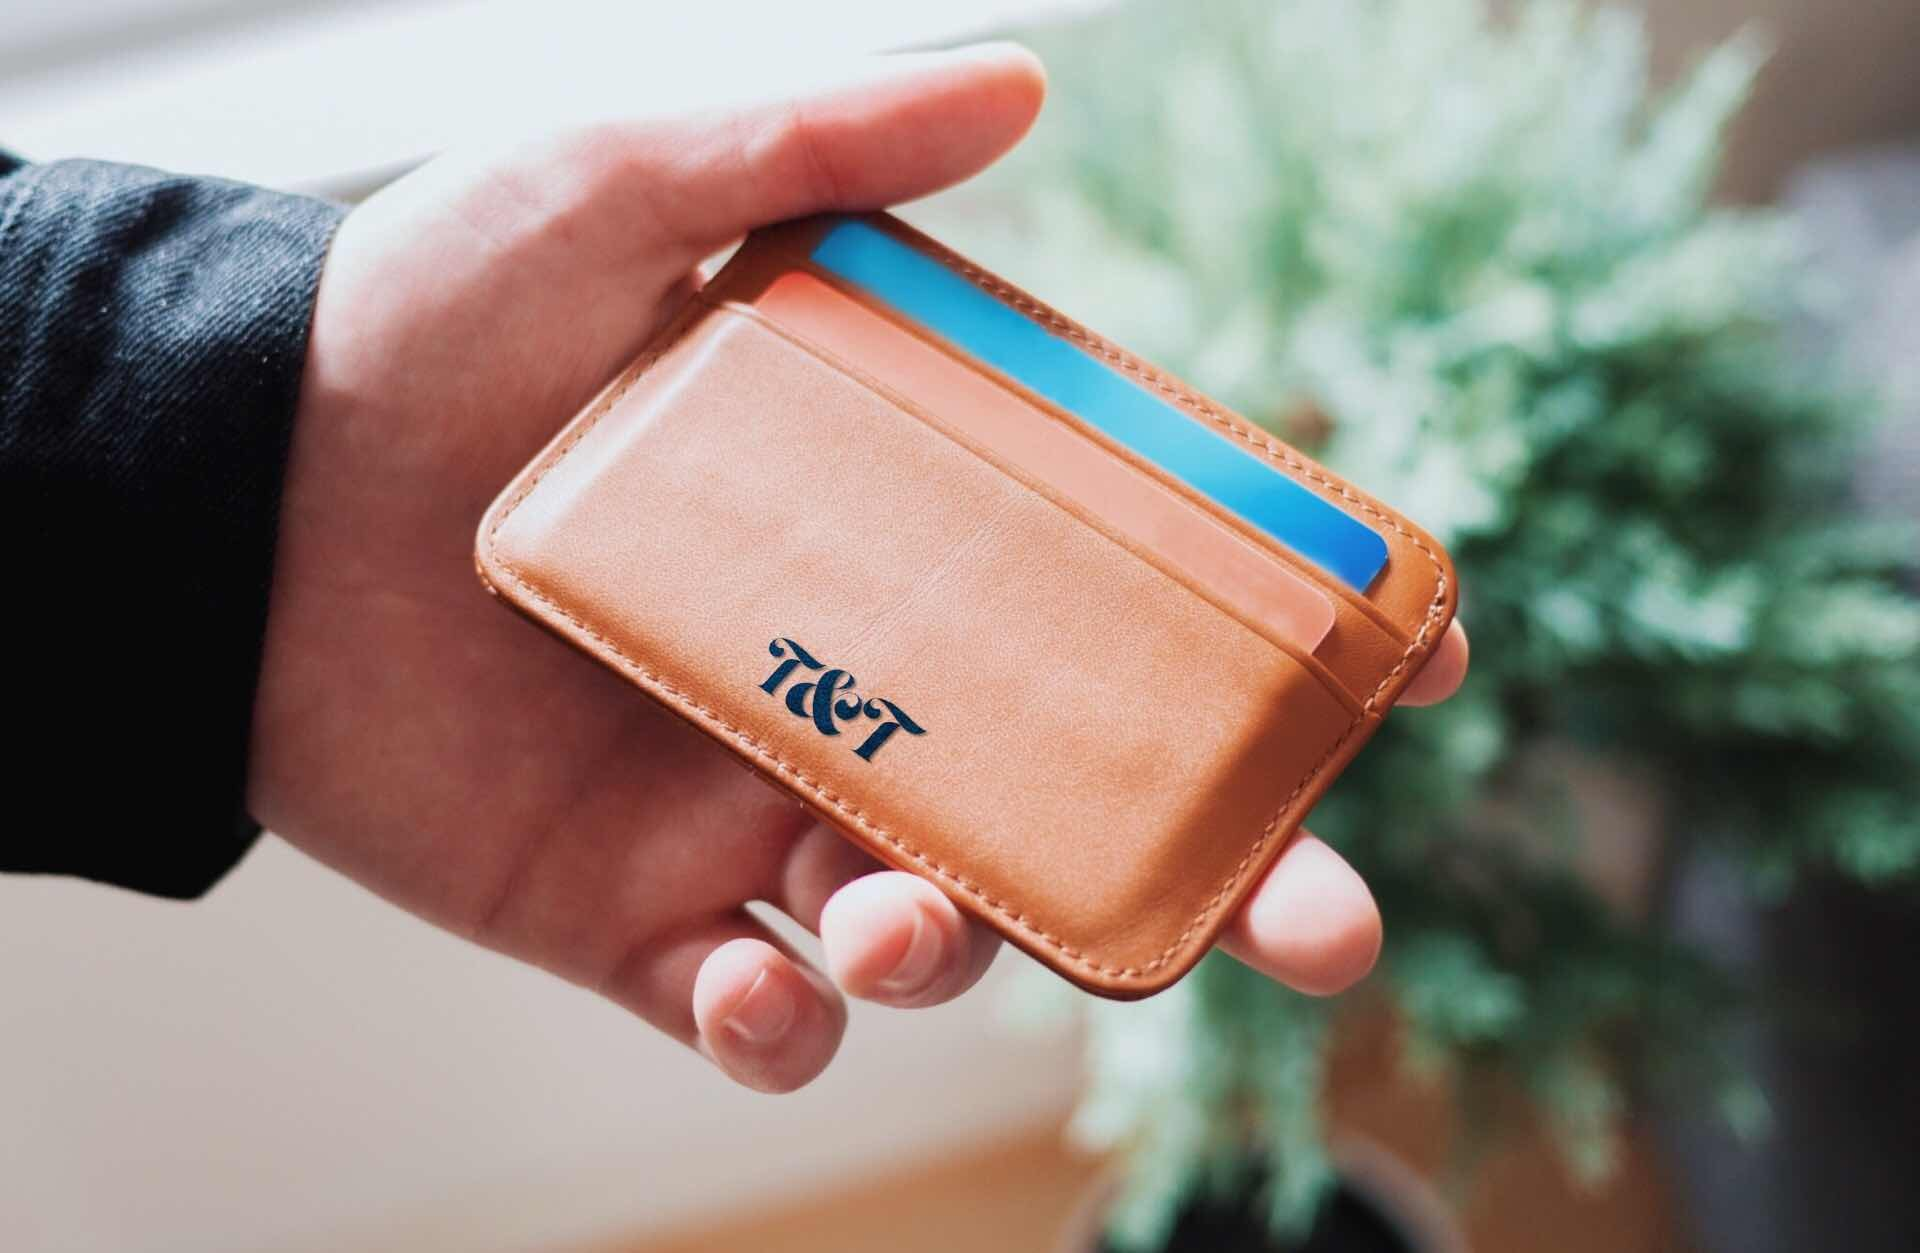 the-slimmest-wallets-for-your-money-guide-hero-oliur-rahman